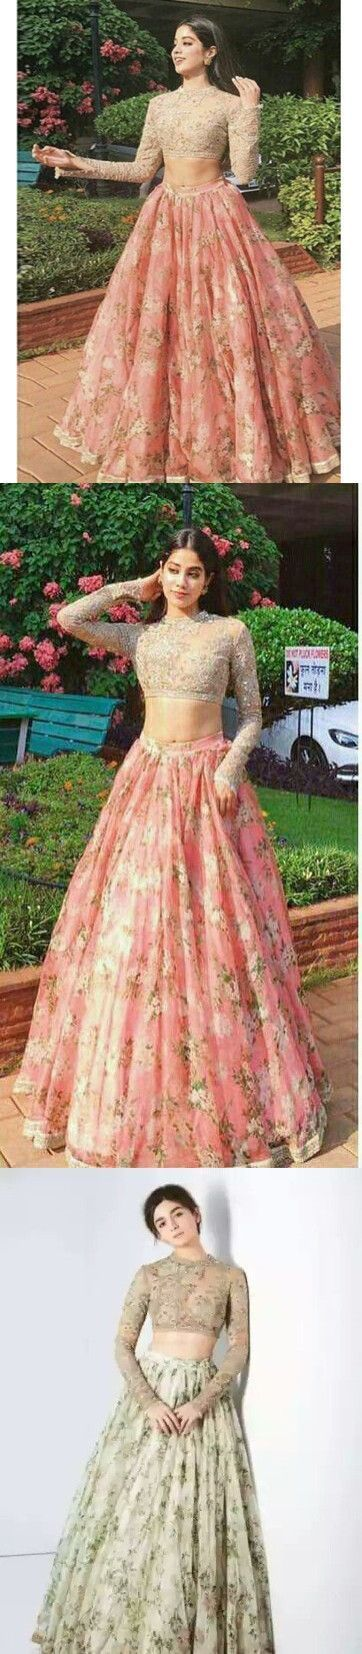 2fea81d772 Two Piece Lace Prom Dress Indian Gold And Pink by PrettyLady on Zibbet